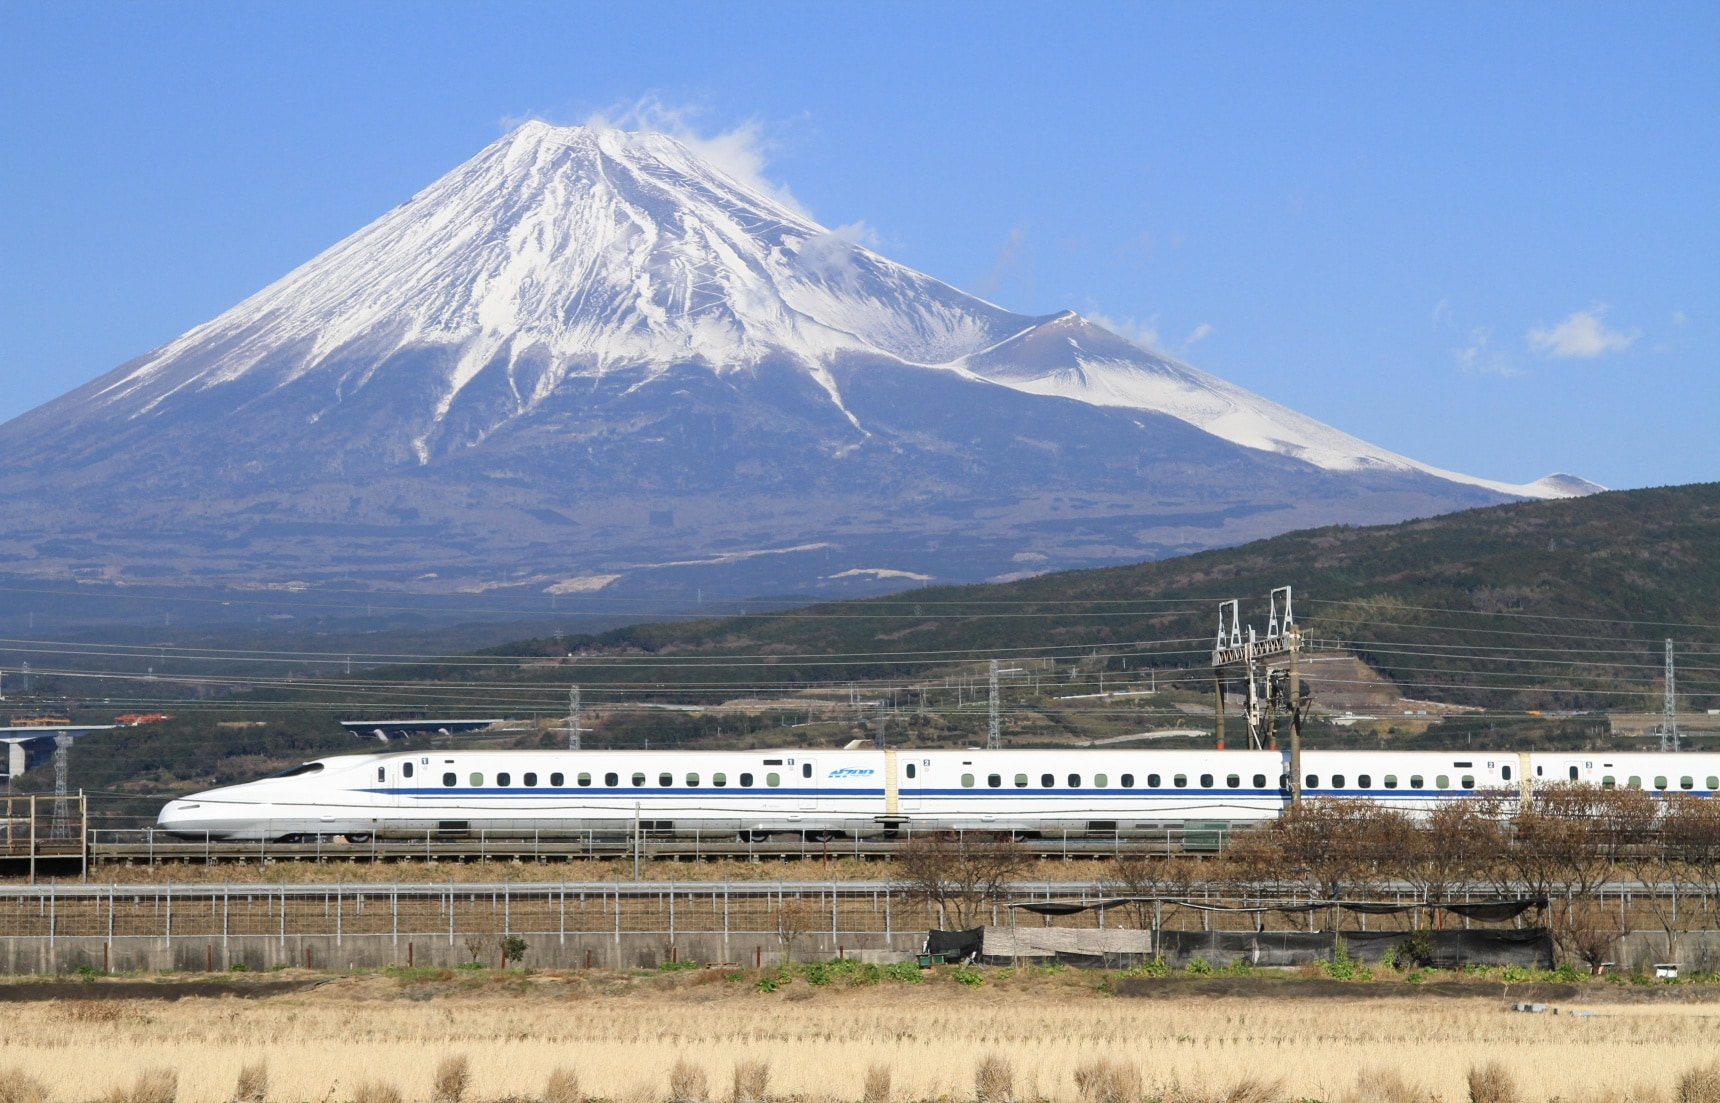 How to Travel to Mount Fuji from Kansai